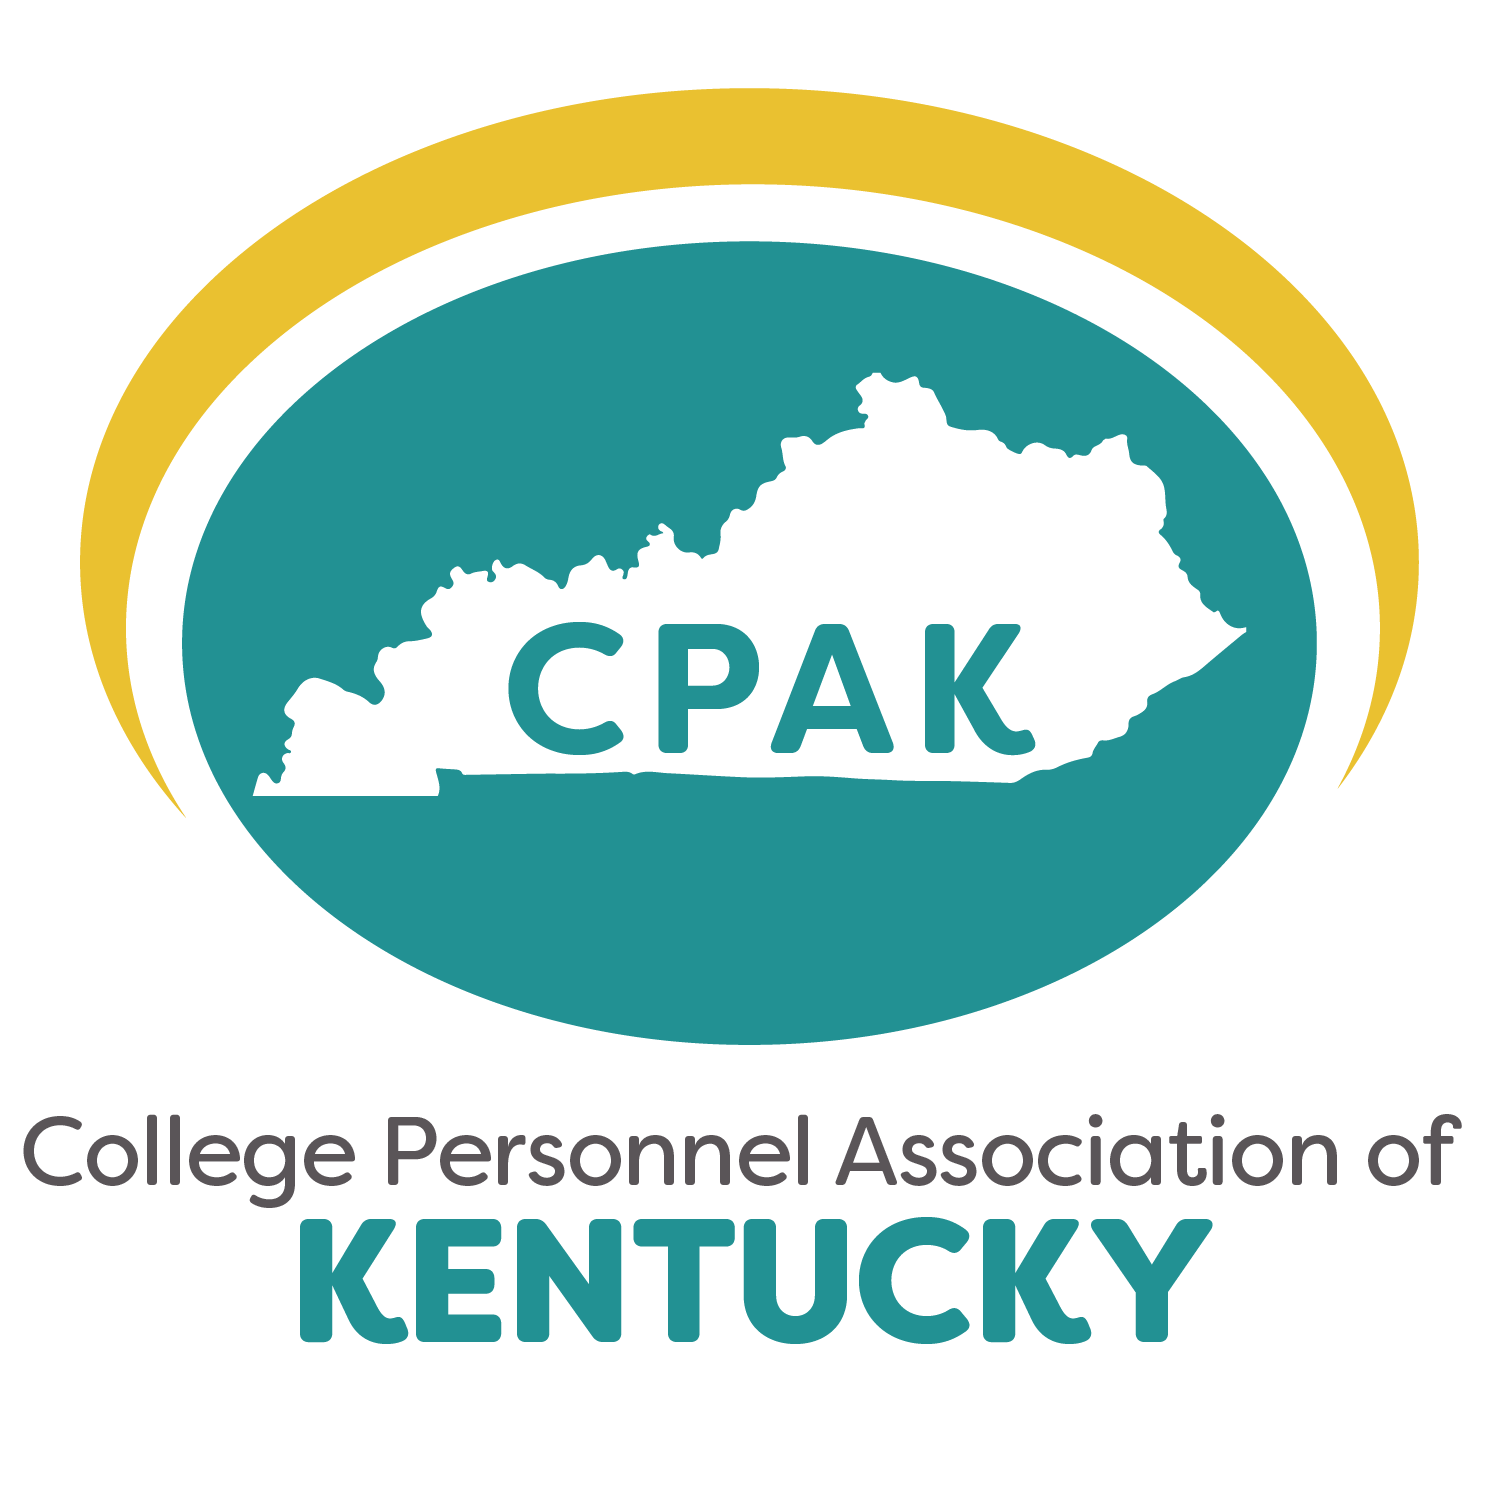 CPAK logo featuring the outline of Kentucky